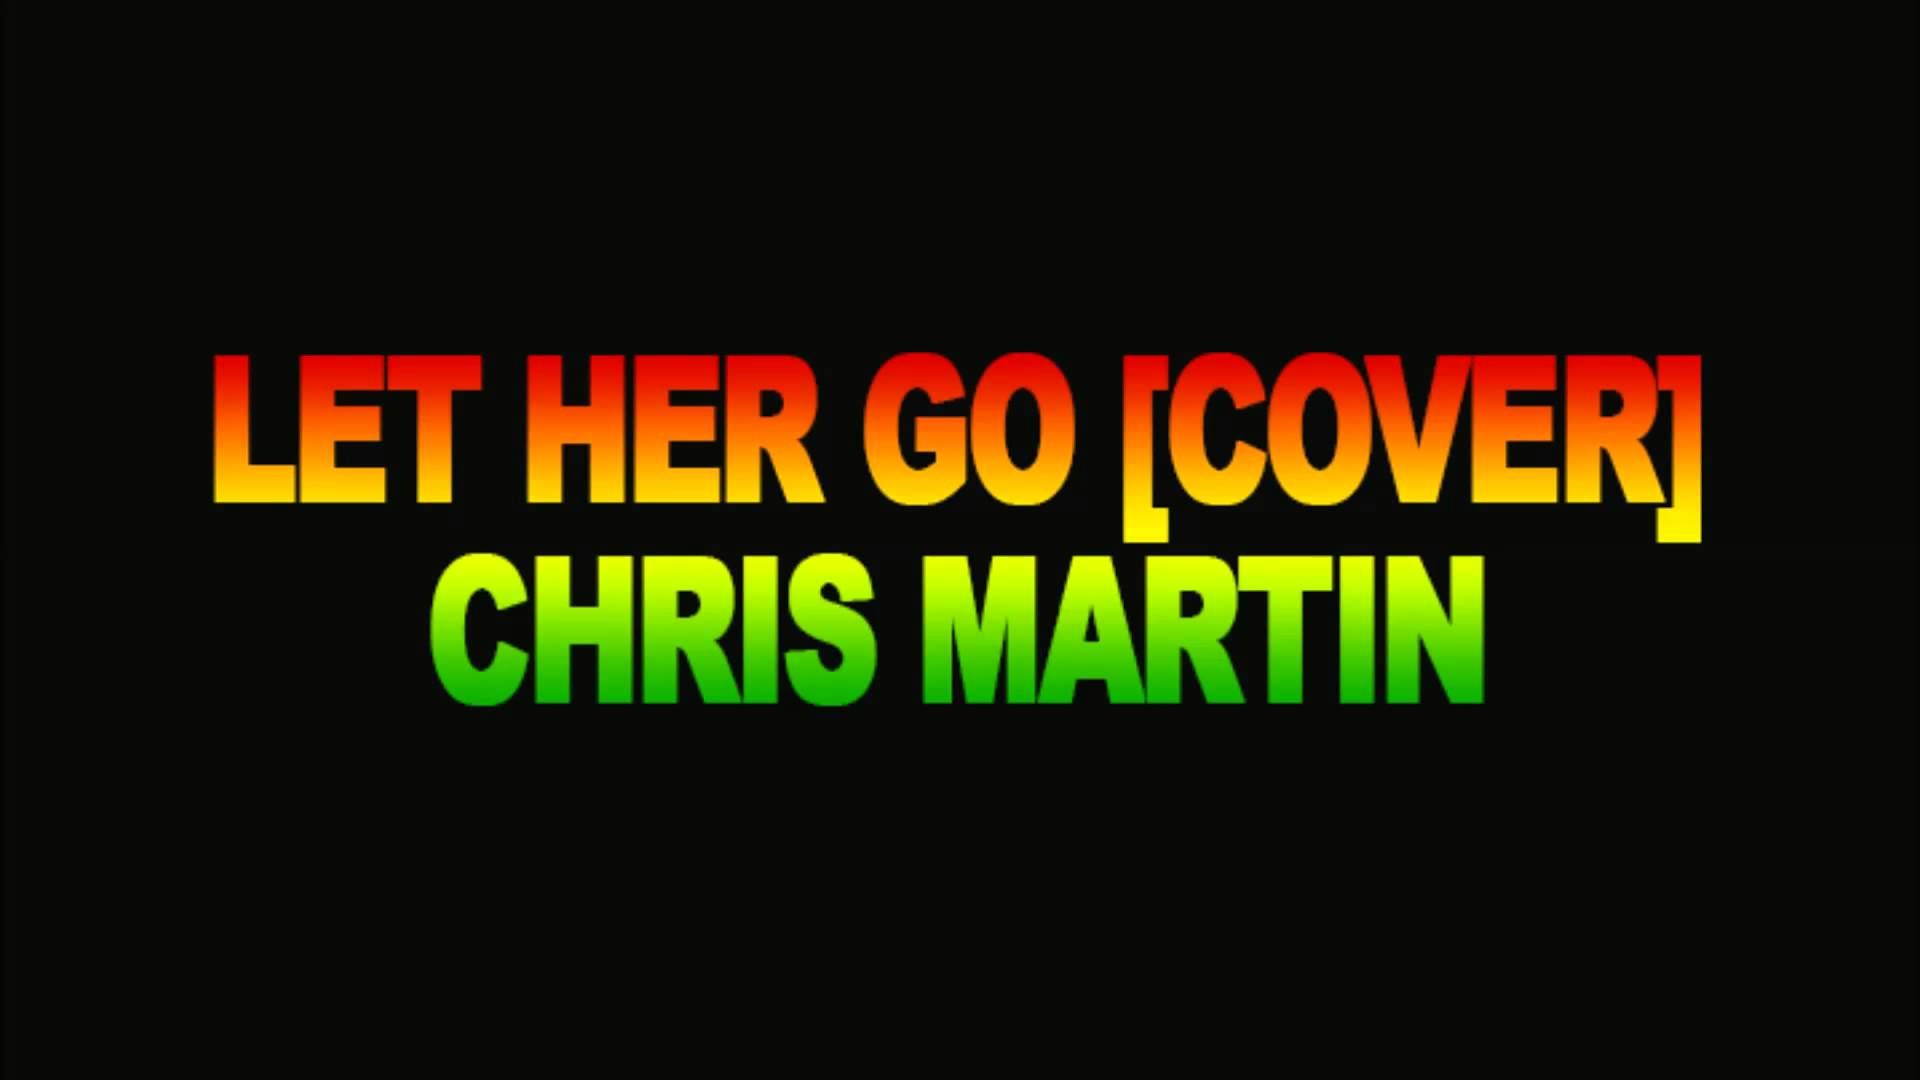 Let Her Go (Reggae Cover) - Chris Martin [Nov 2013] | Reggea